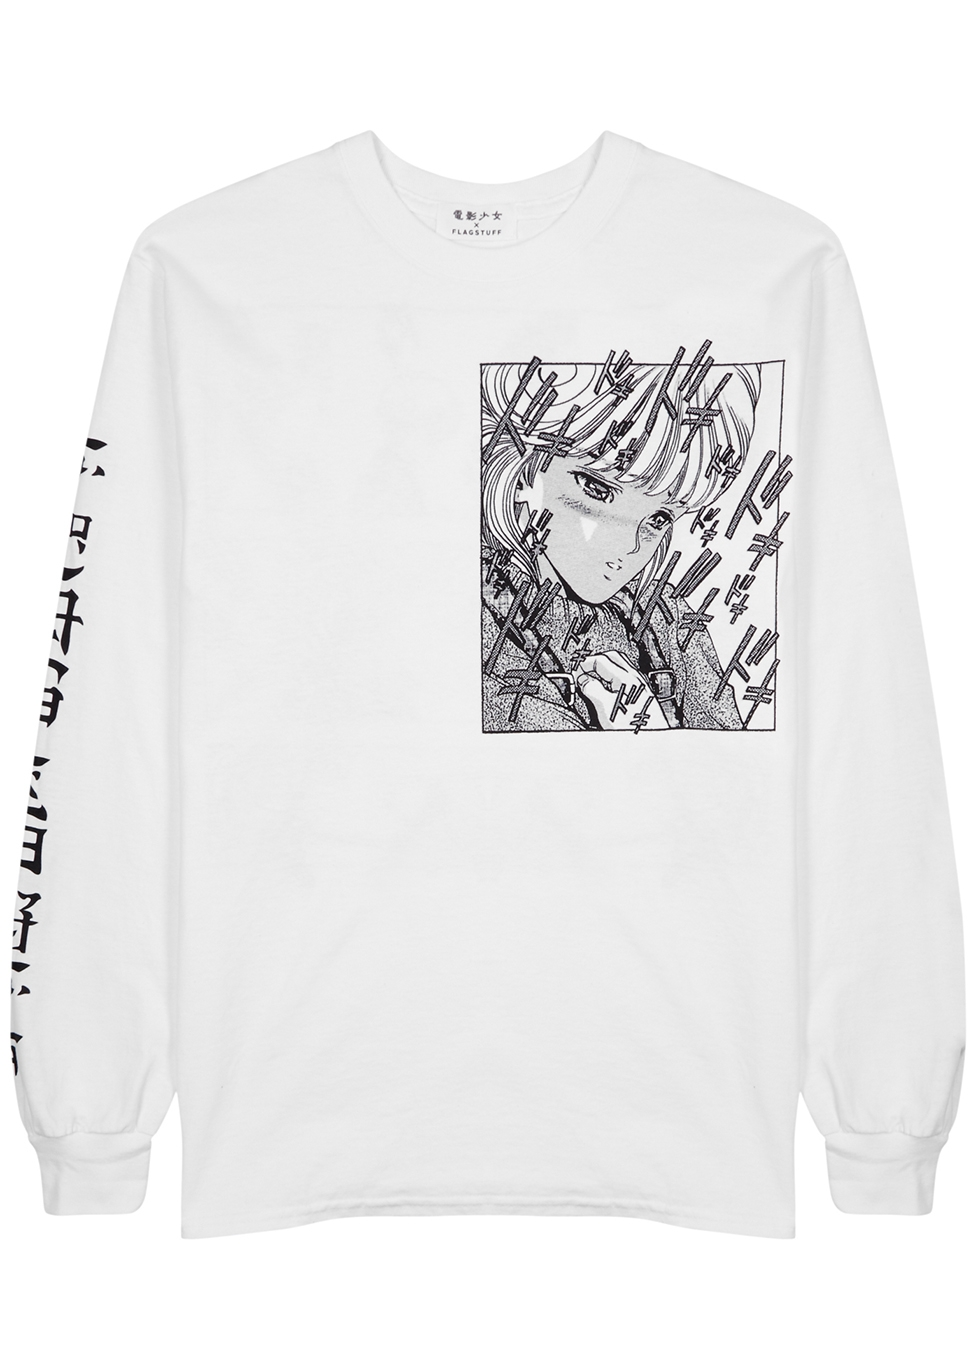 White cotton T-shirt - Flagstuff